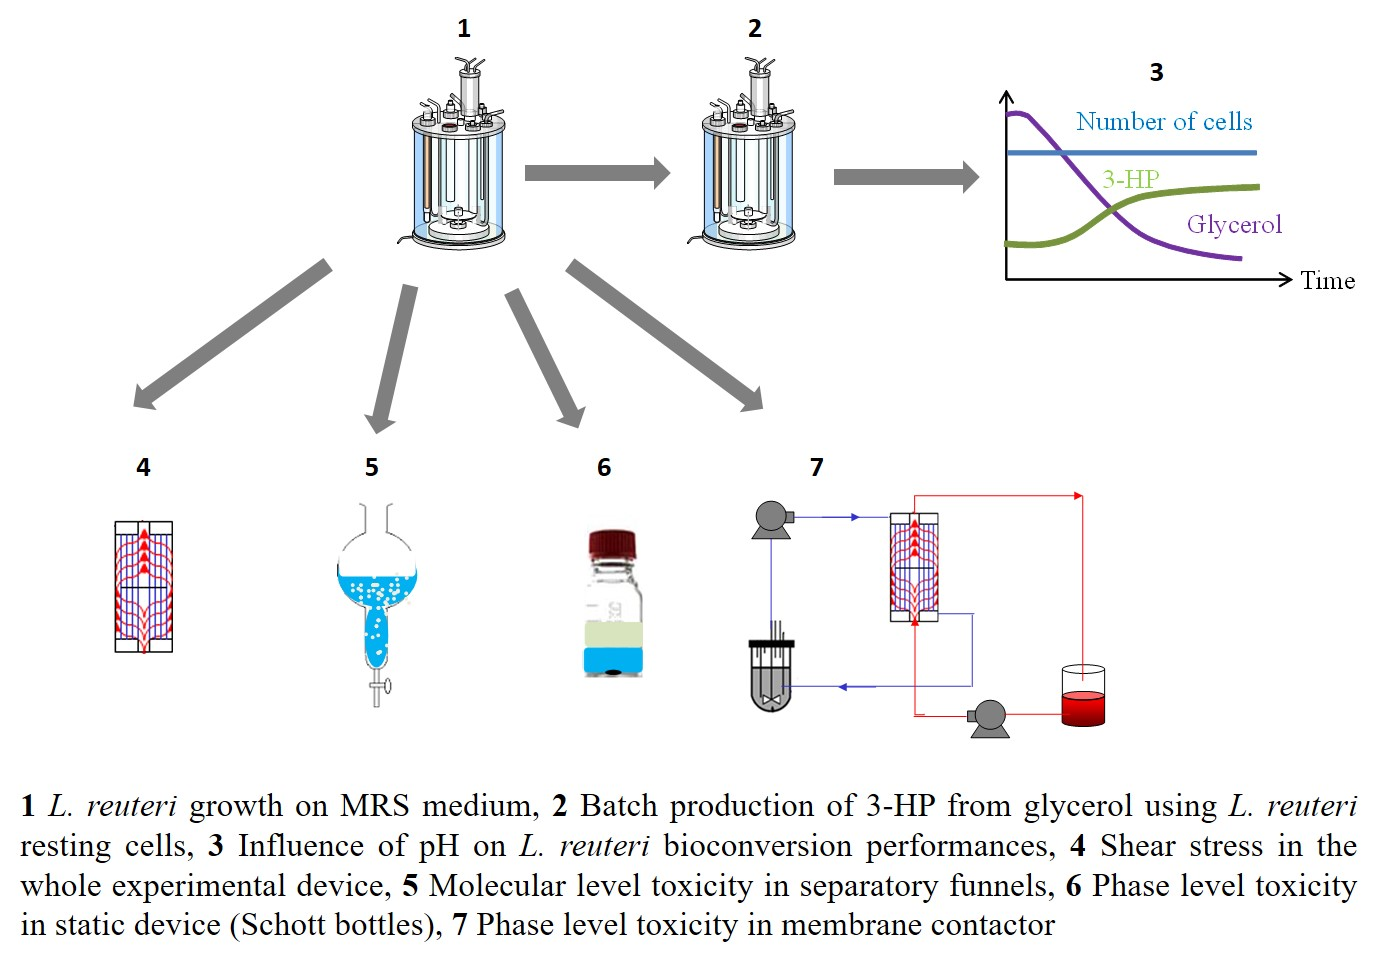 Towards an extractive bioconversion of 3-hydroxypropionic acid: study of inhibition phenomena